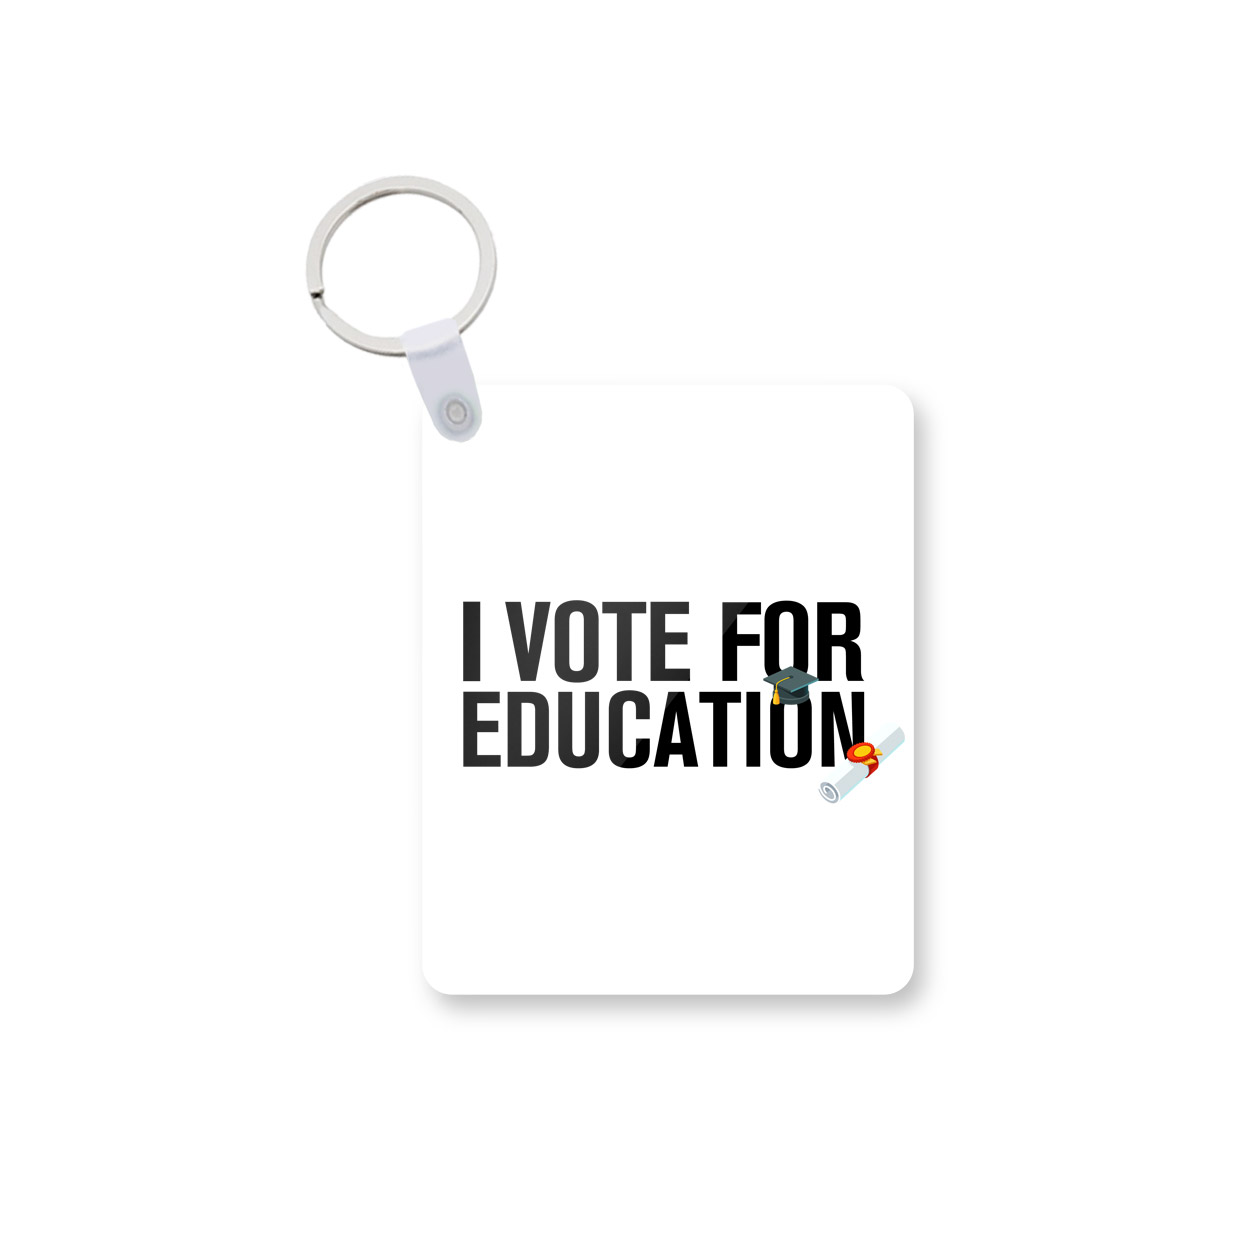 I Vote For Education Printed Keychain kc-666 price in